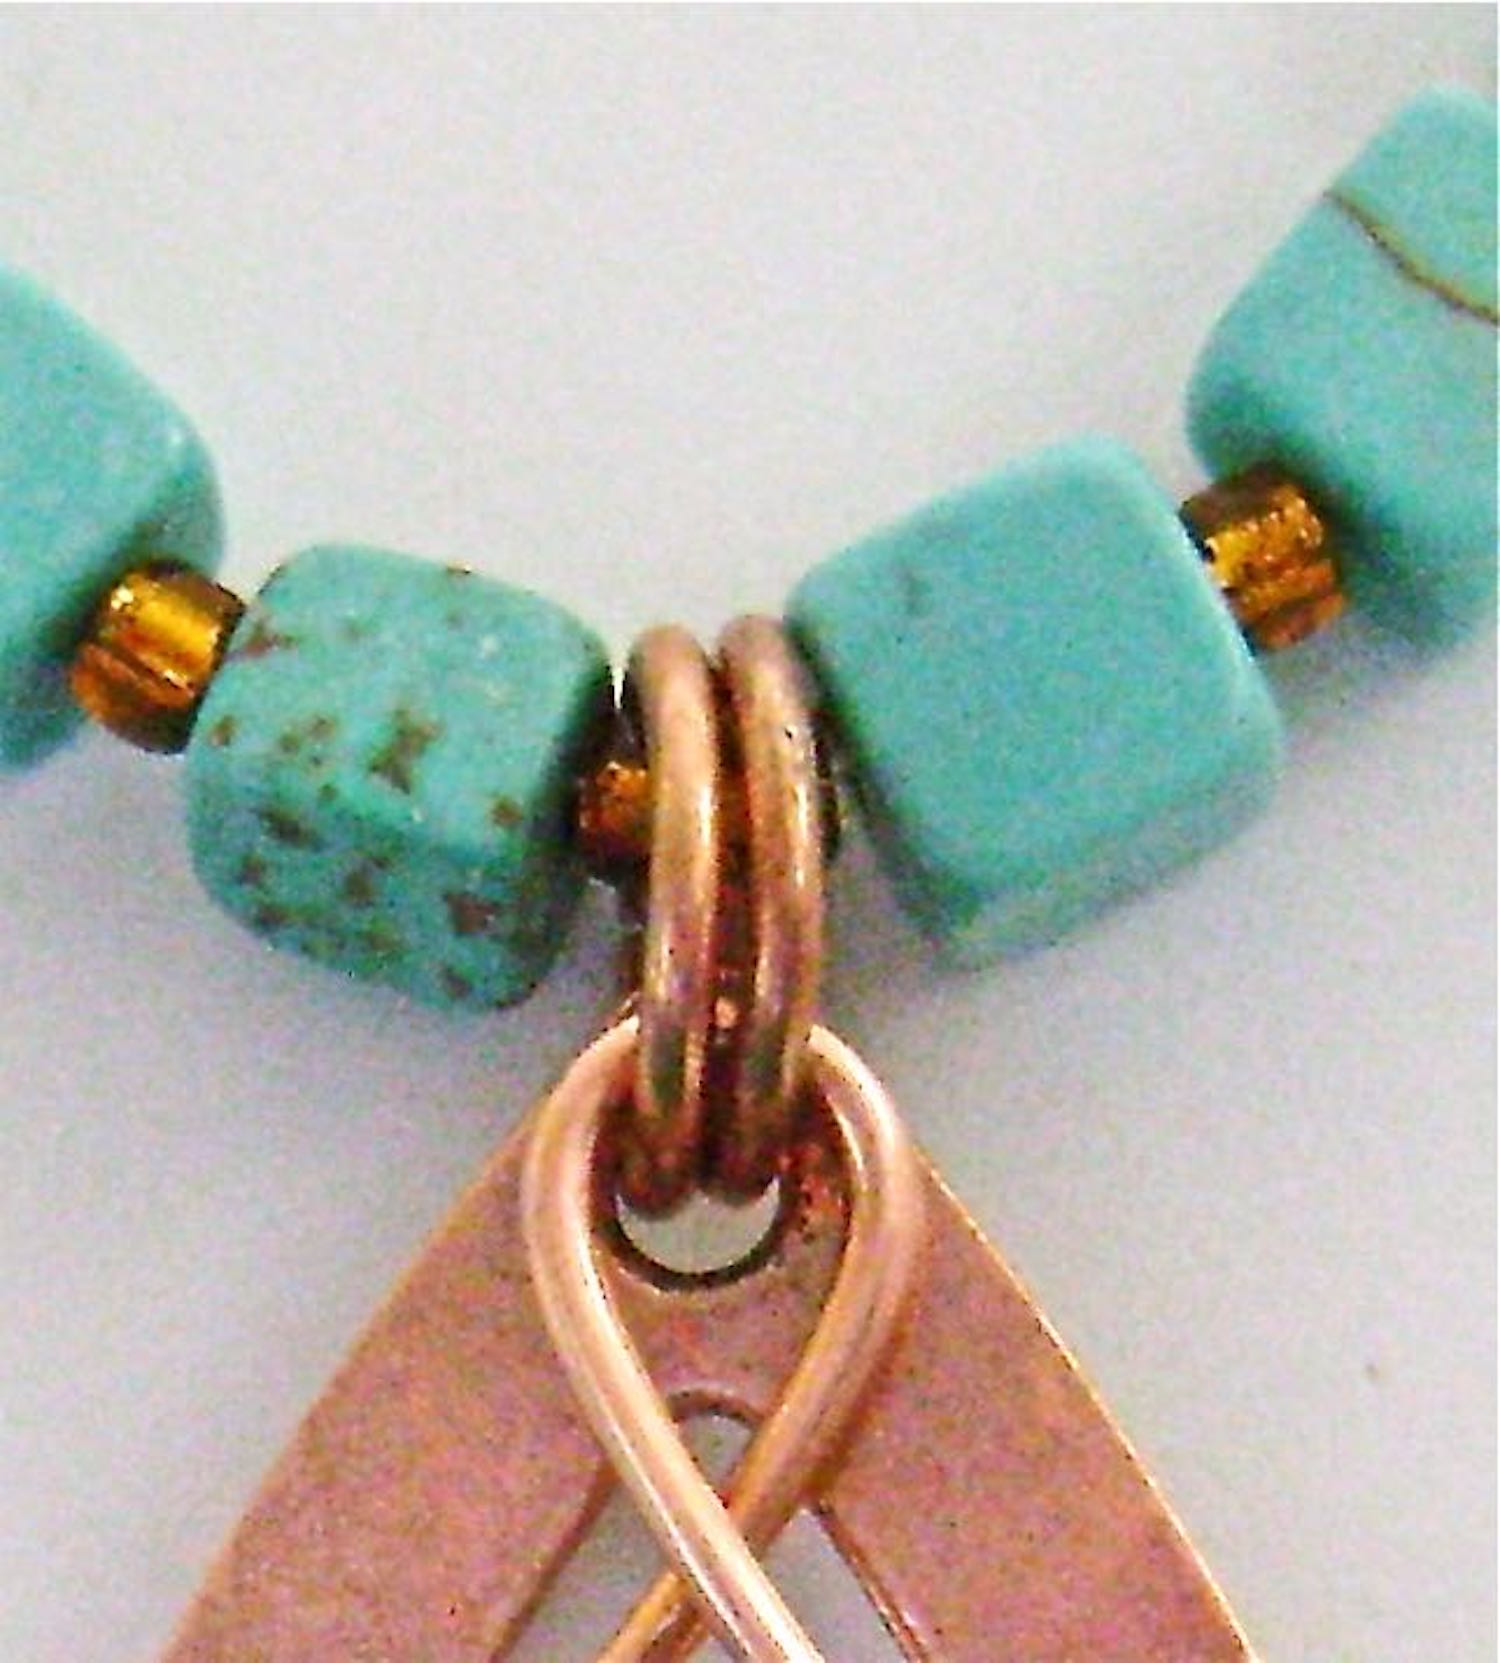 step 7 - Attach two copper jump rings to the teardrop and loop of the decorative wire.